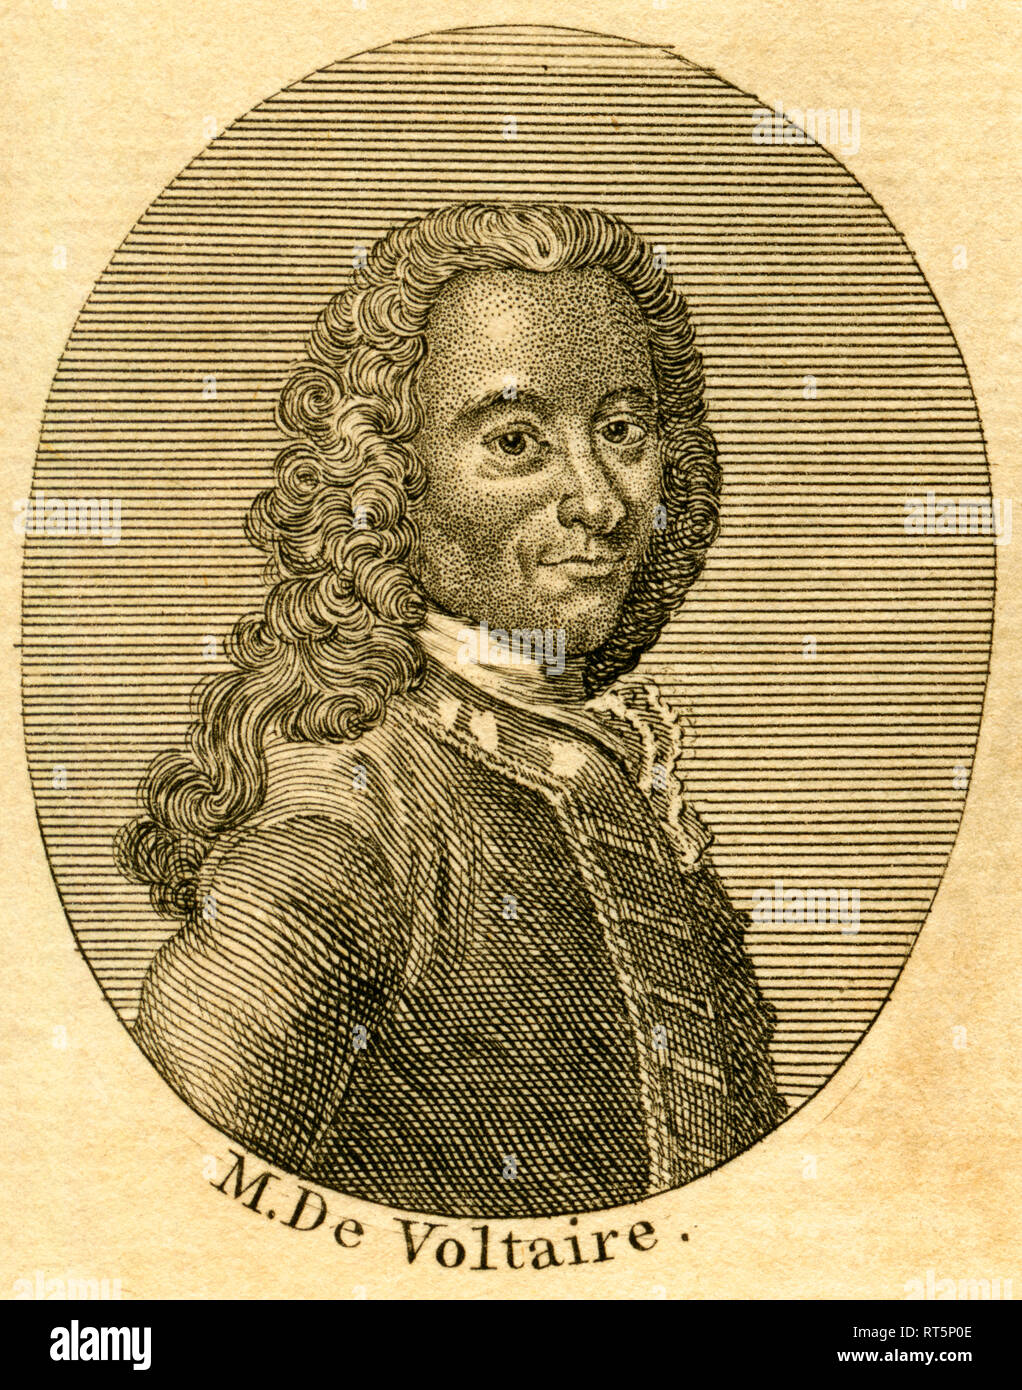 Voltaire, French writer and philosopher, etching from an book of the 18th century / about 1766., Additional-Rights-Clearance-Info-Not-Available - Stock Image